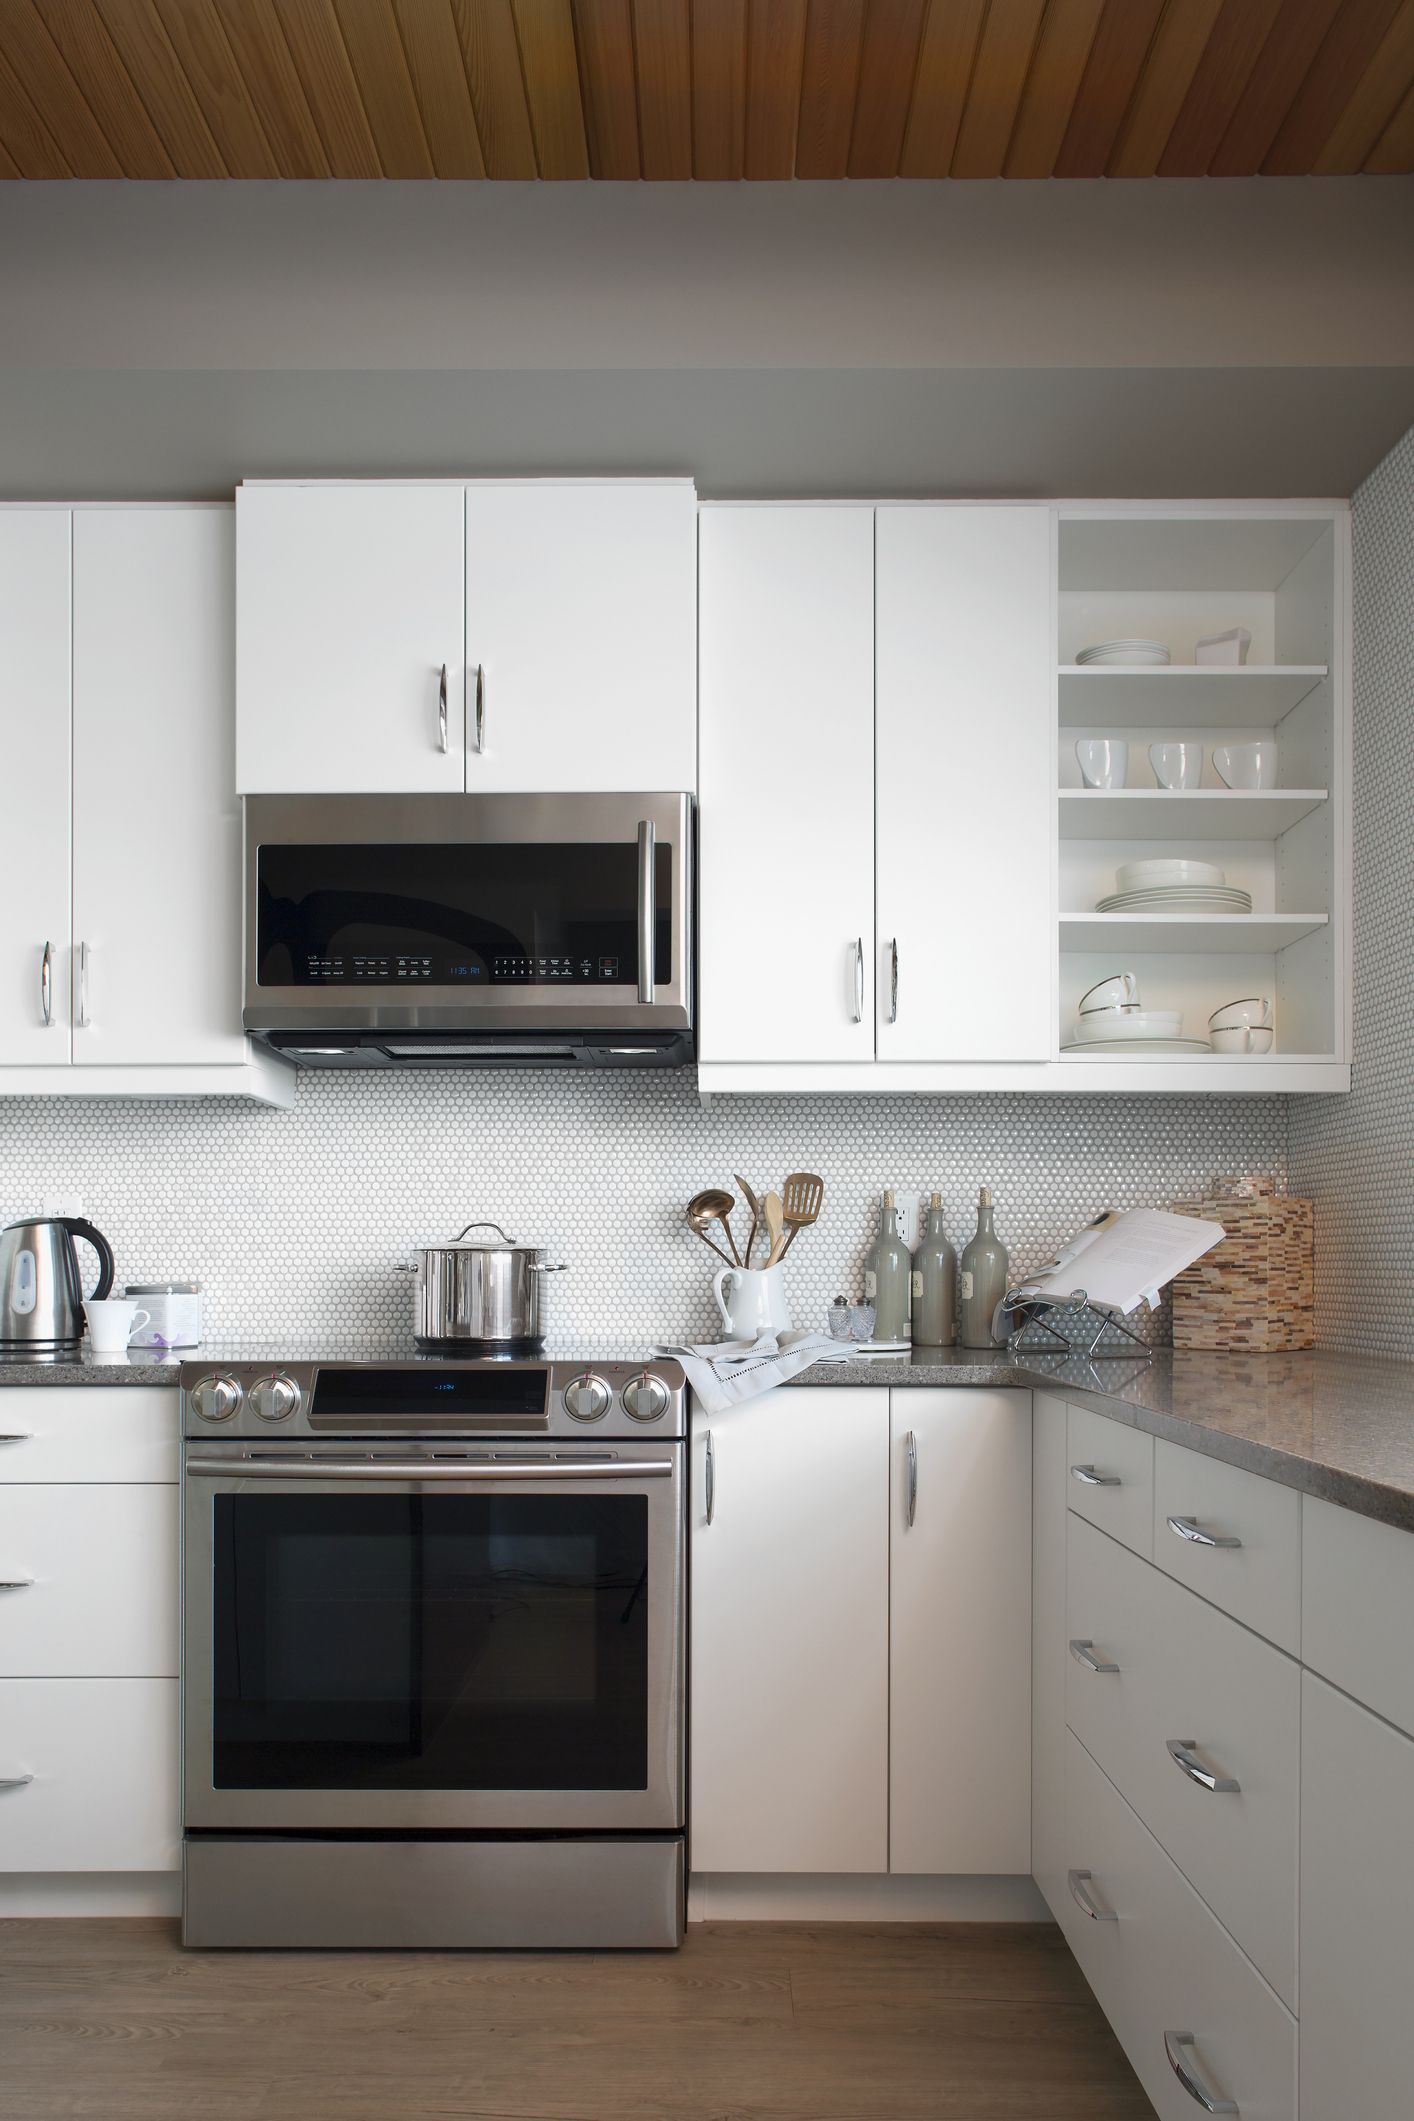 Best Home Appliance Sales On Presidents Day 2019